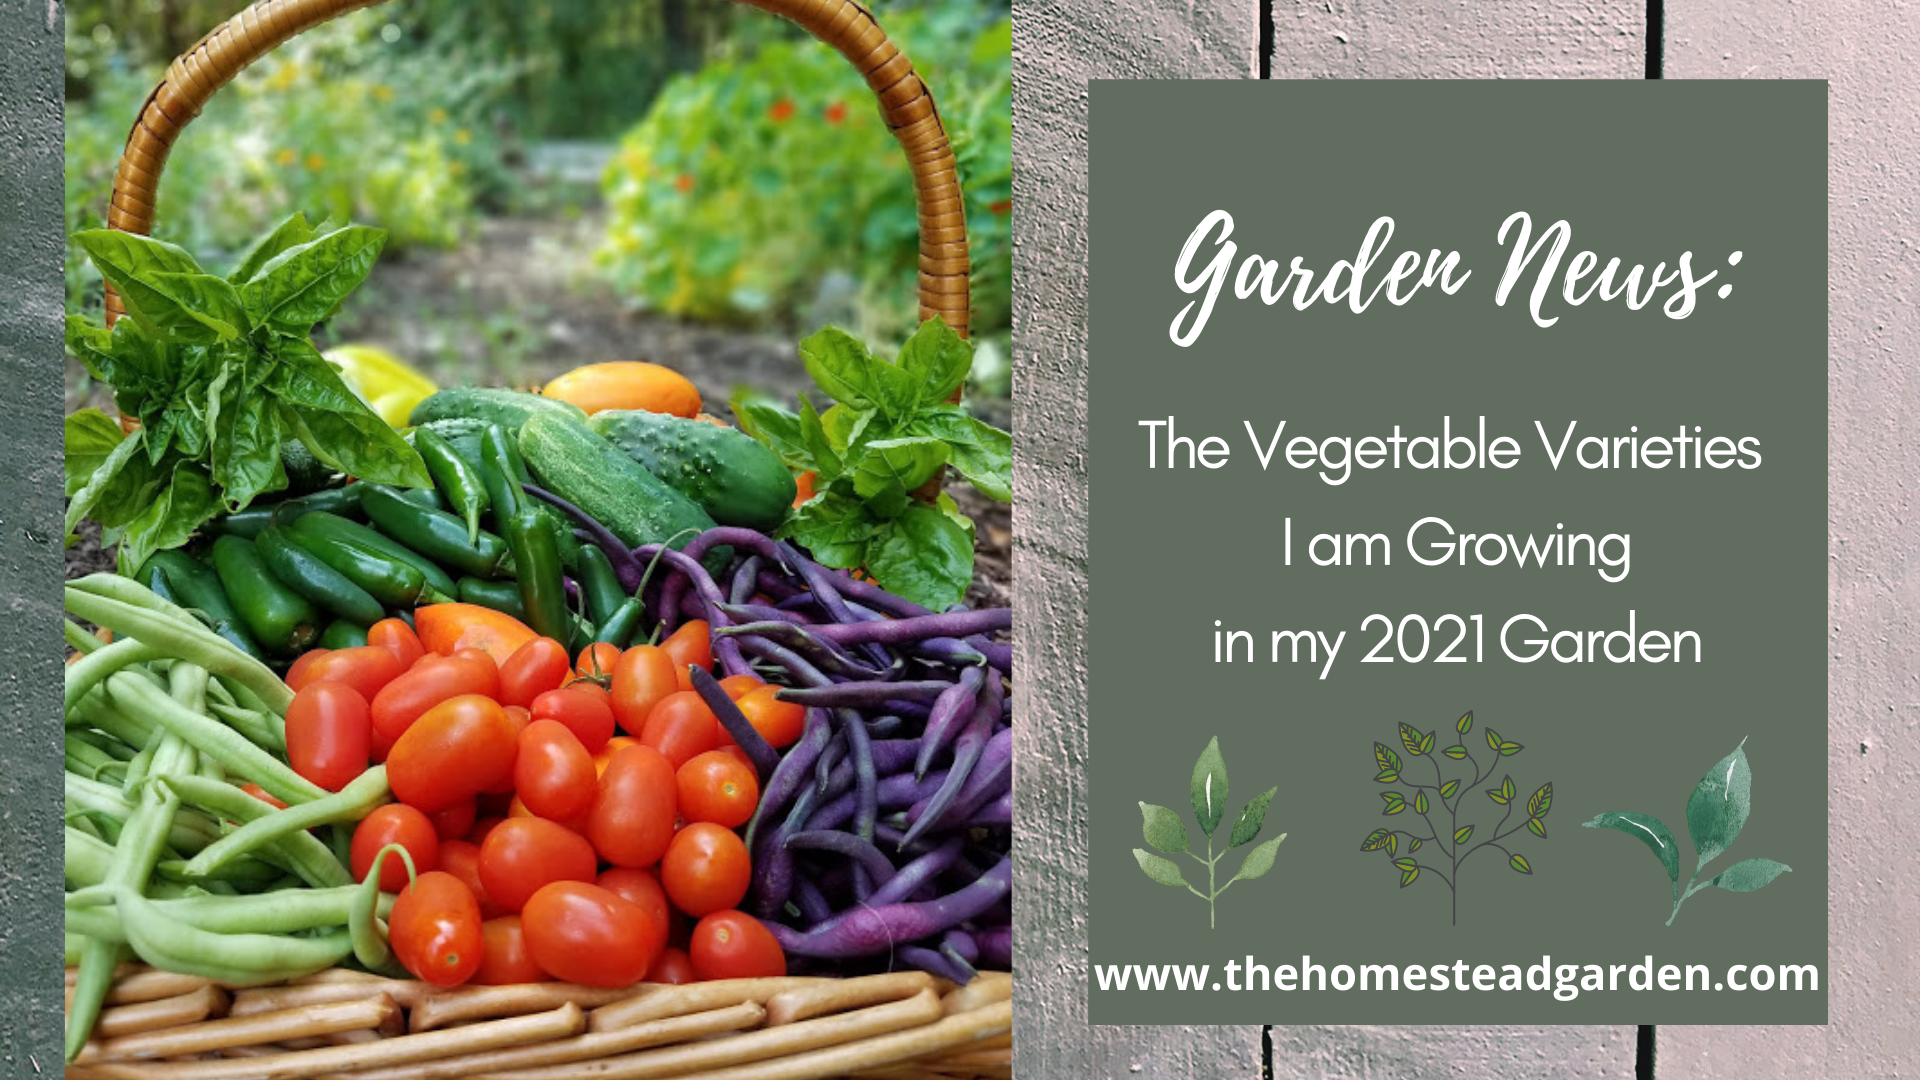 Garden News: The Vegetable Varieties I am Growing in my 2021 Garden